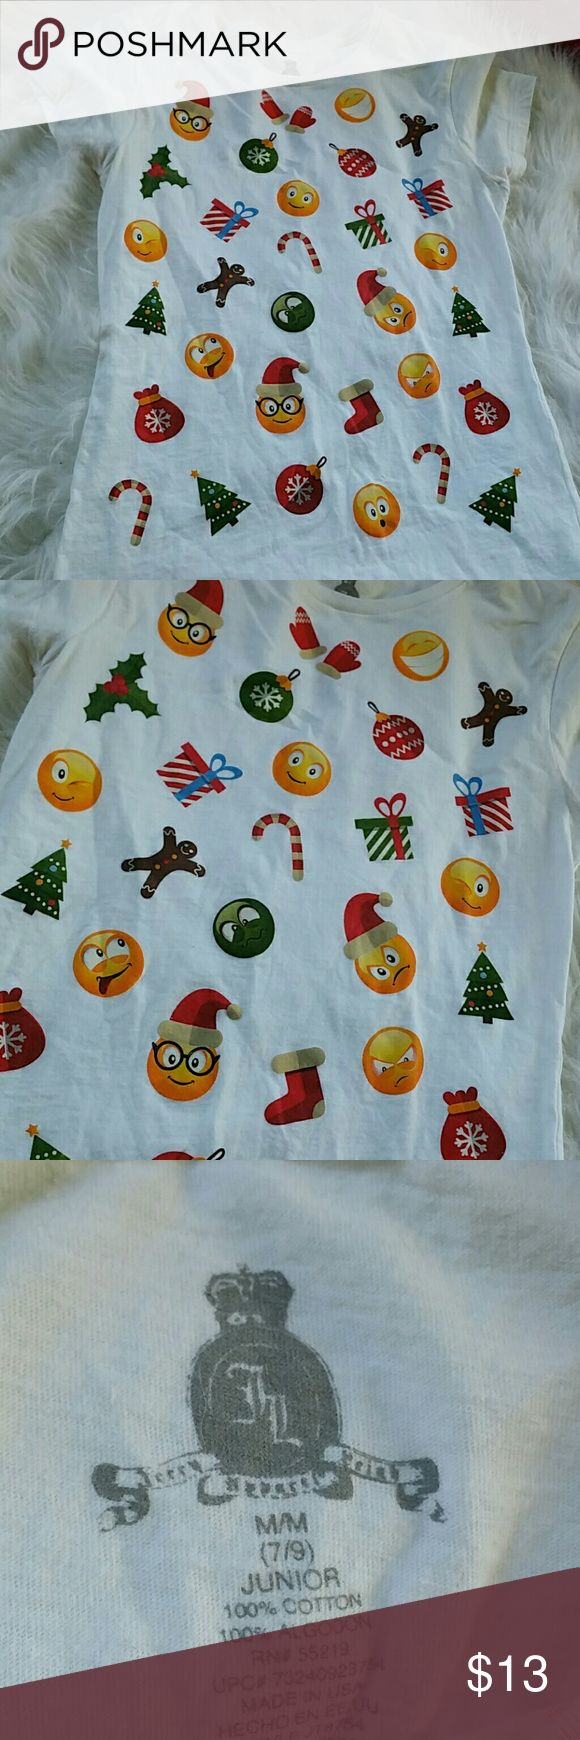 BNWOT CHRISTMAS EMOJI TOP ??????????? How cute is this for Christmas has everything from the gingerbread man shoe nerdy Santa Claus emoji has Christmas trees emoji happy and mad faces well the list goes on you get the gist..... this says medium 7 - 9 jr BNWOT Tops Tees - Short Sleeve